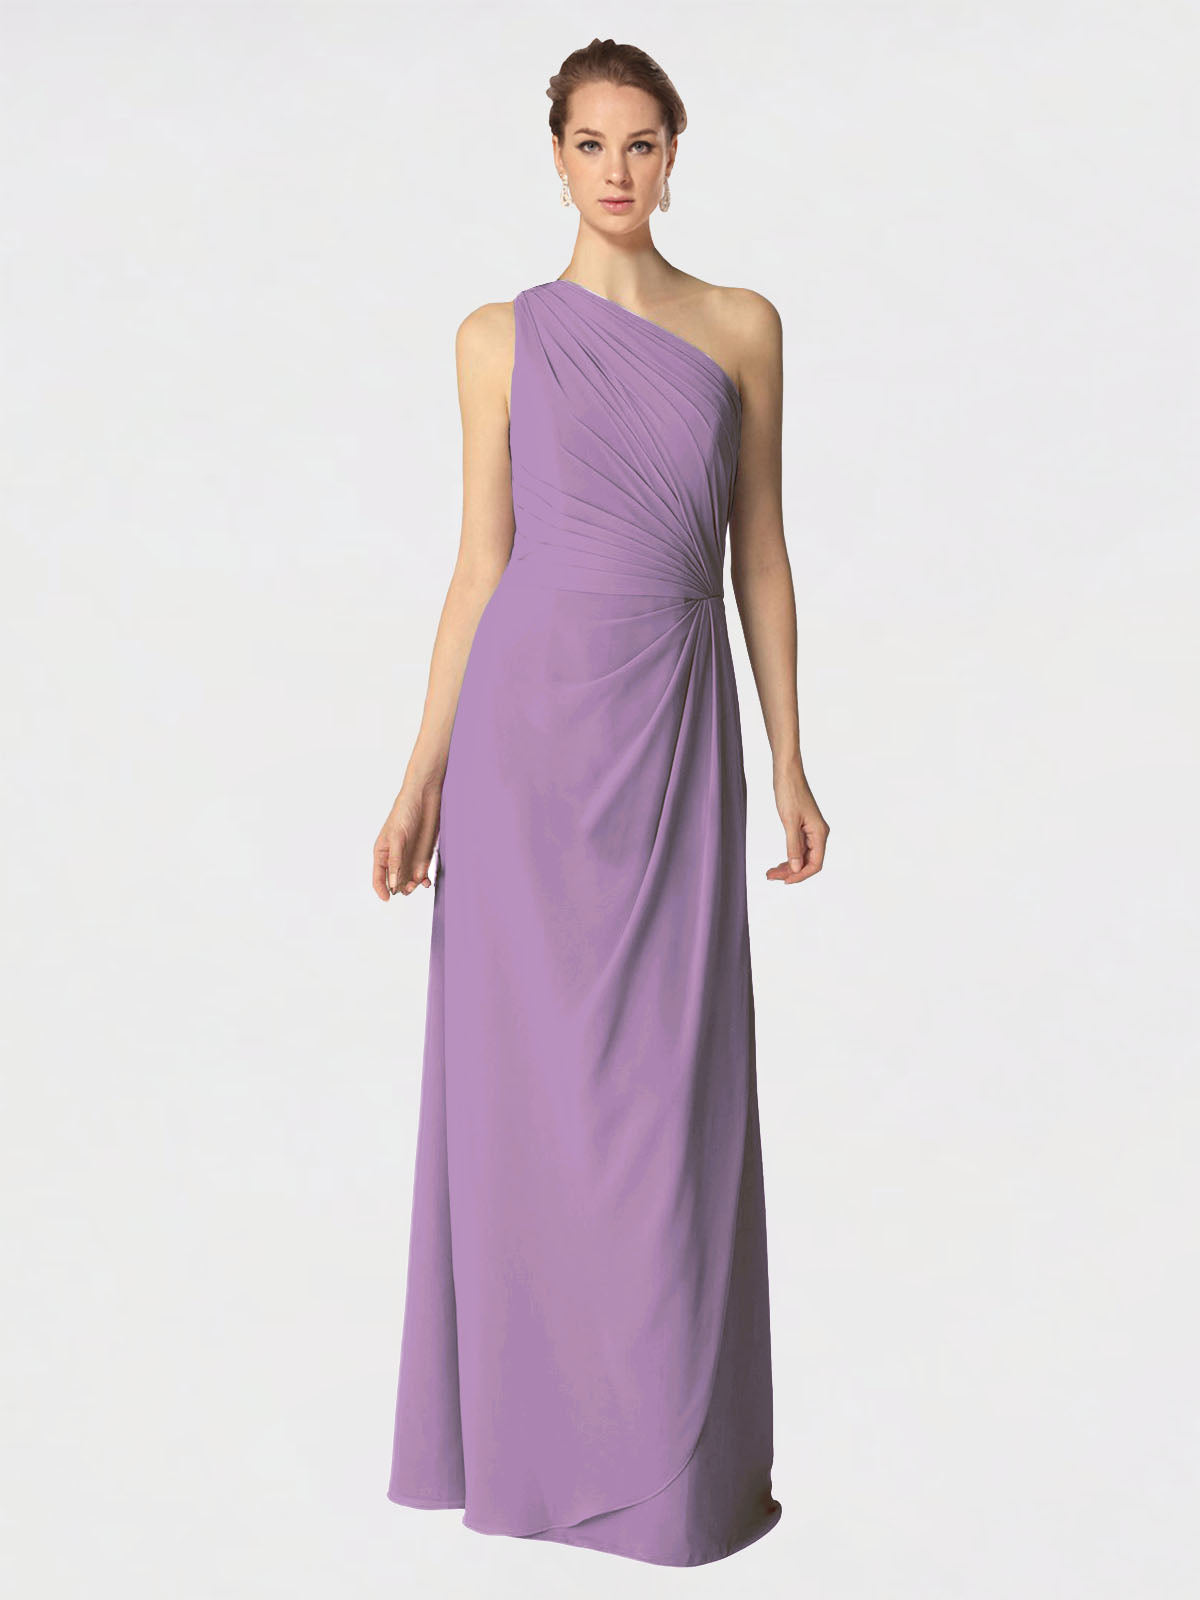 Long A-Line One Shoulder Sleeveless Dark Lavender Chiffon Bridesmaid Dress Aurora